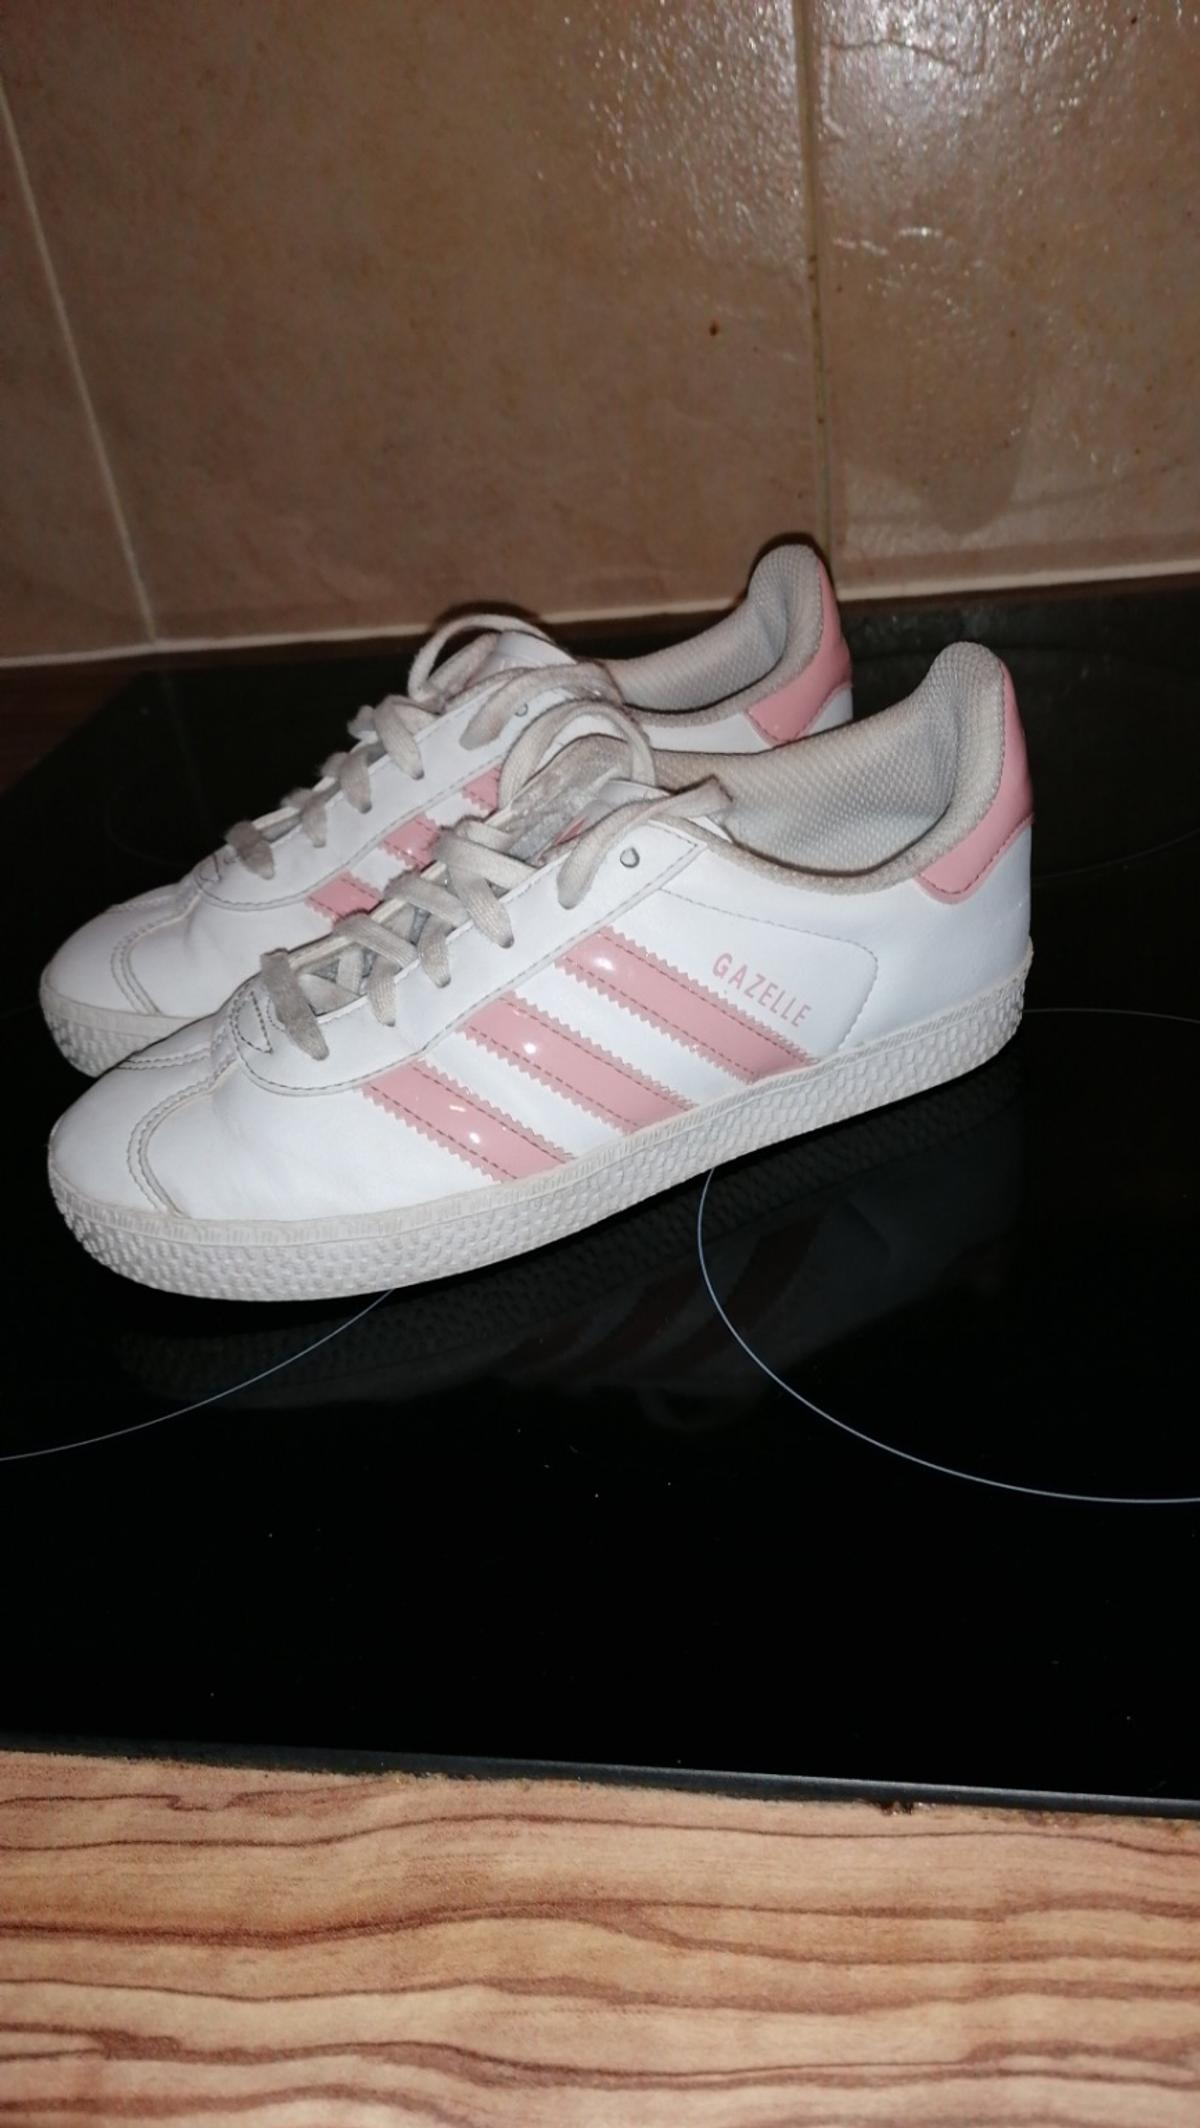 Pink and white Adidas gazelle trainers Size 1 Great condition Collection FY4 area or payment via bank transfer please for 1st class postage sorry I don't have PayPal xx Lots of other items for sale